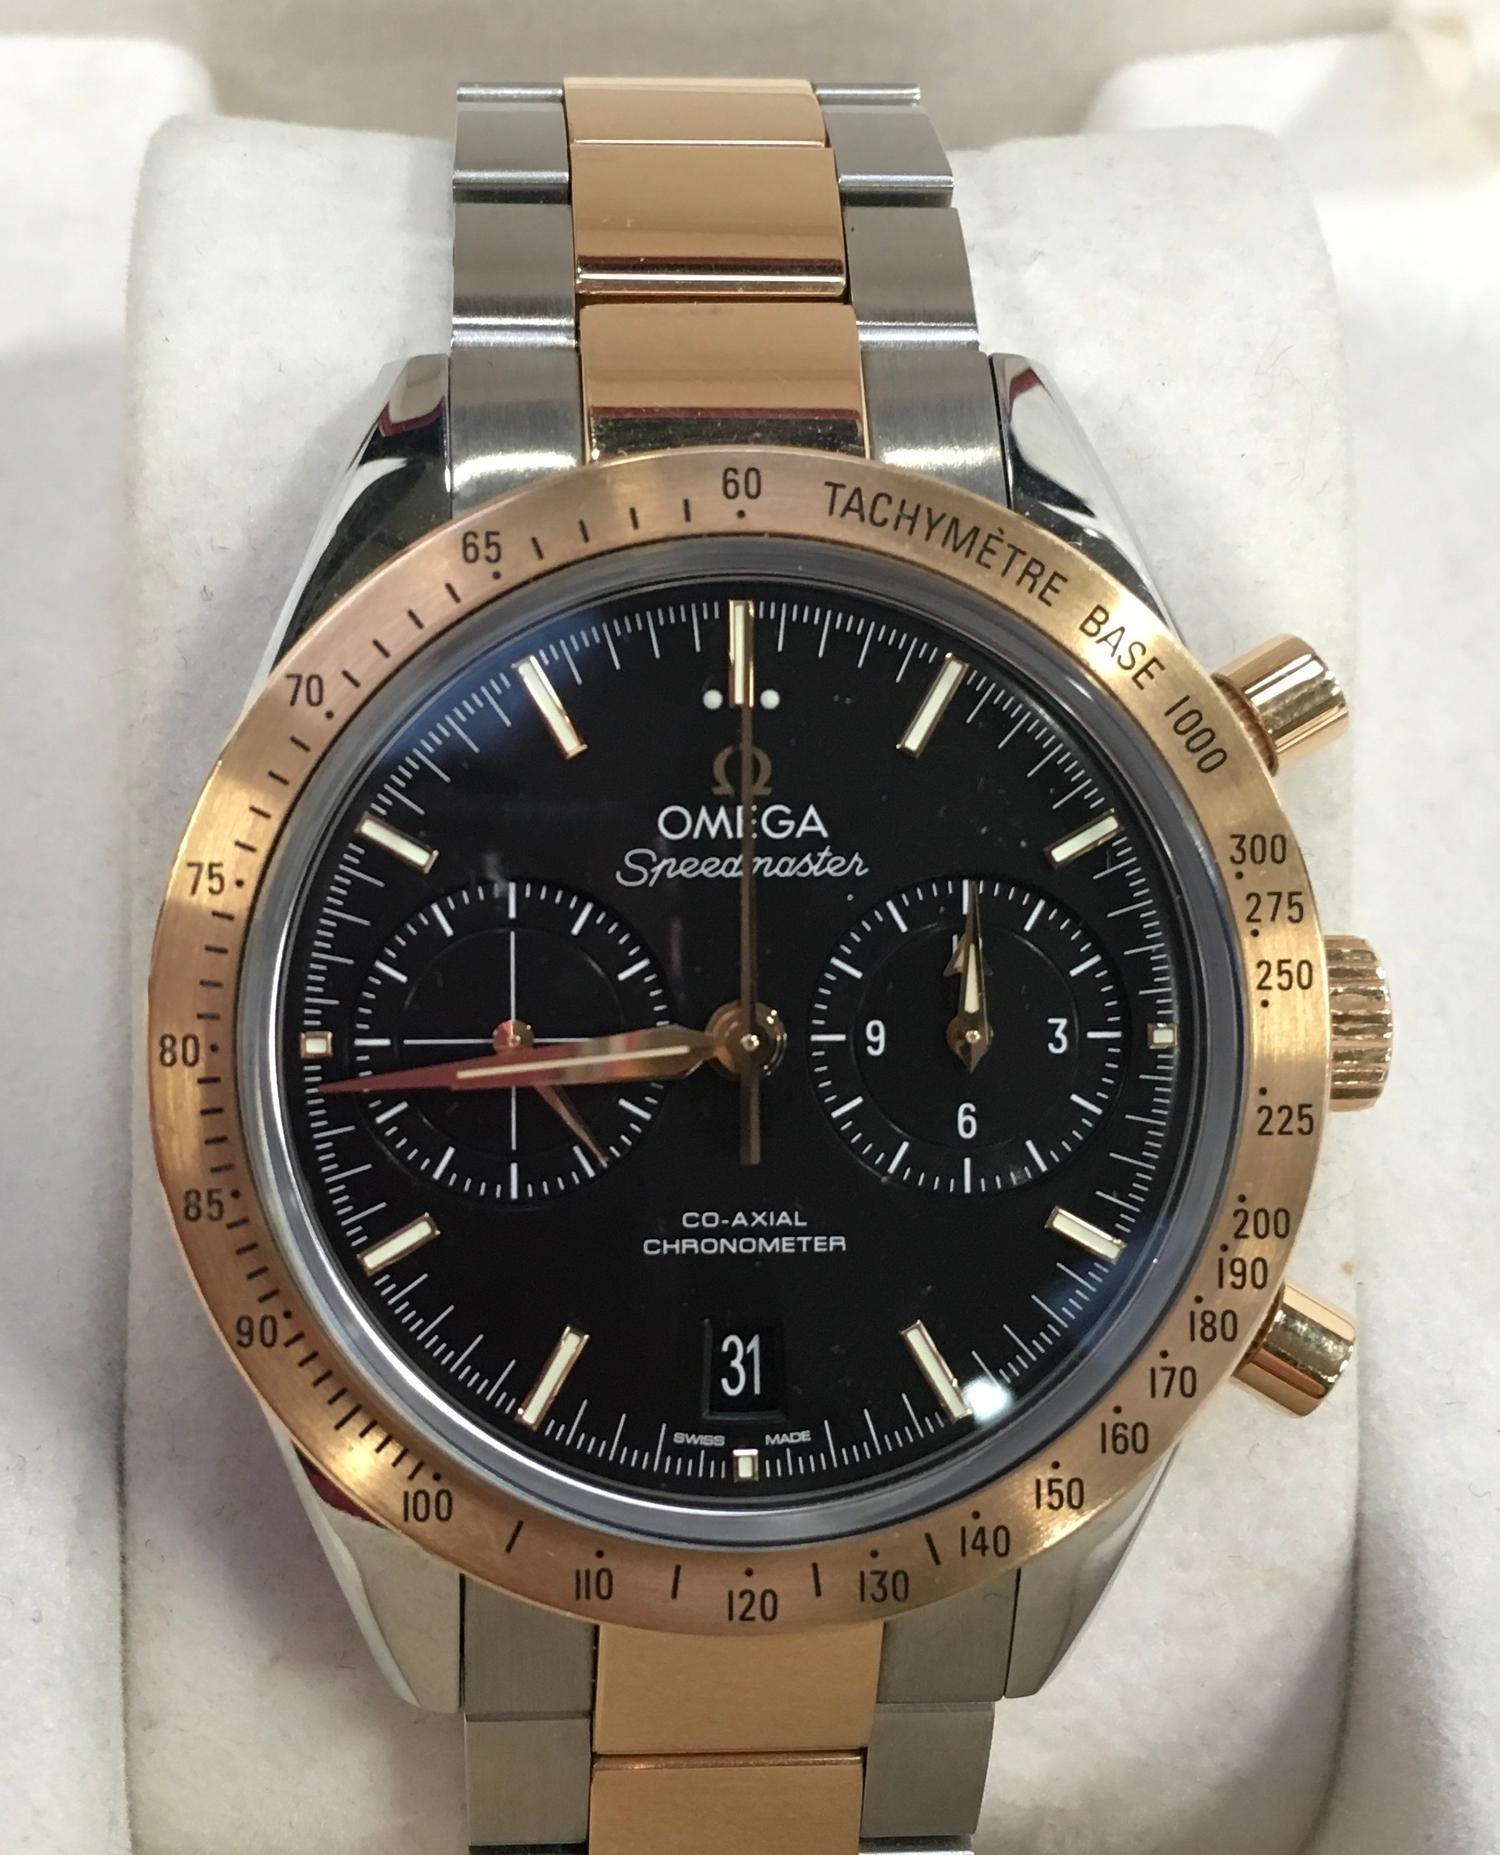 Omega Rose Gold and Stainless Steel Speedmaster Wristwatch, co-axial movement. - Image 2 of 11